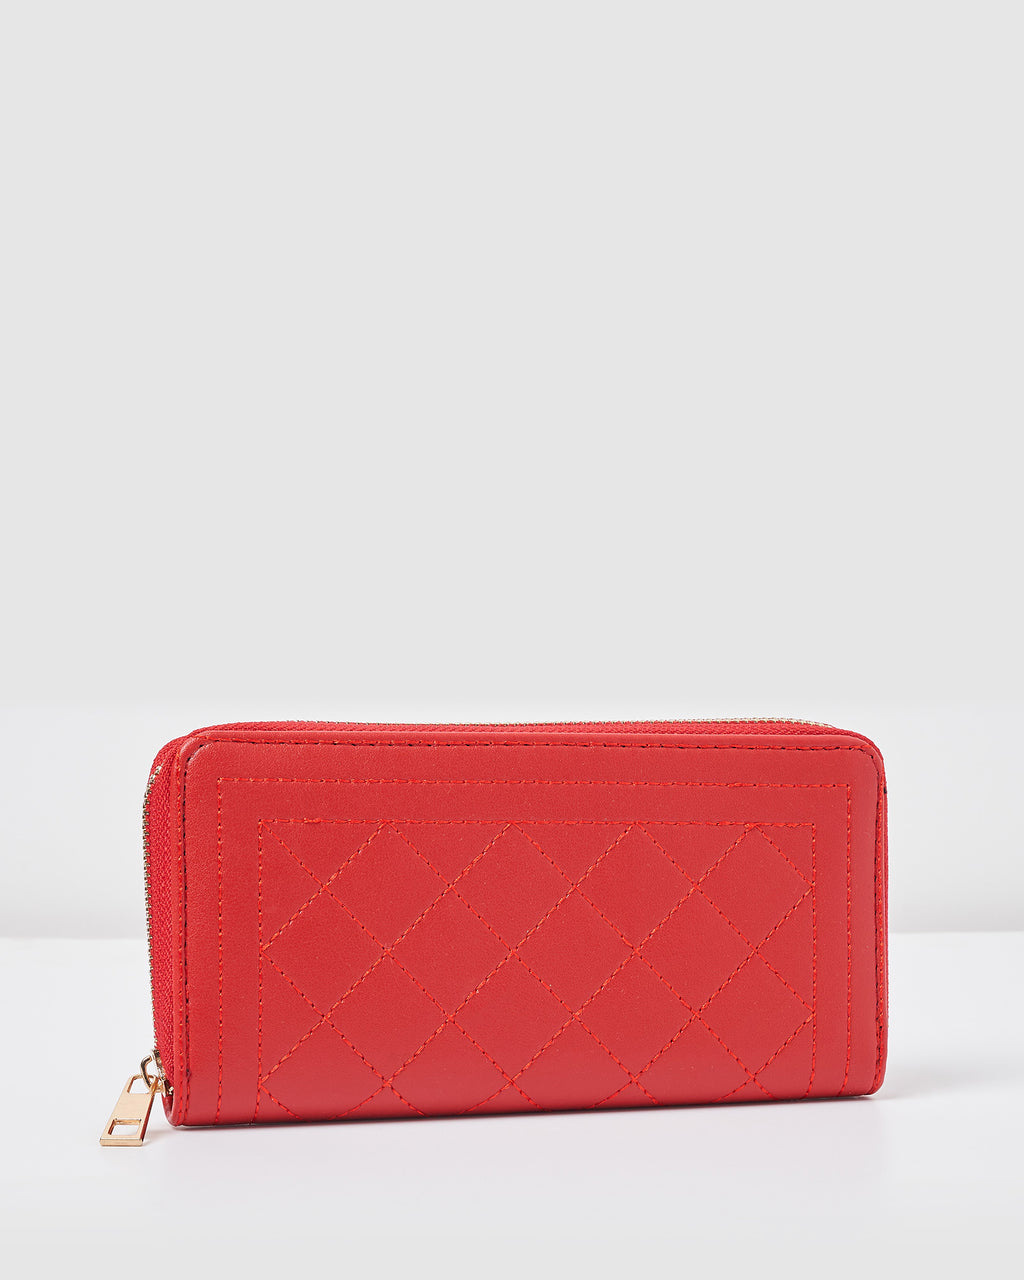 Izoa Frankie Wallet Red